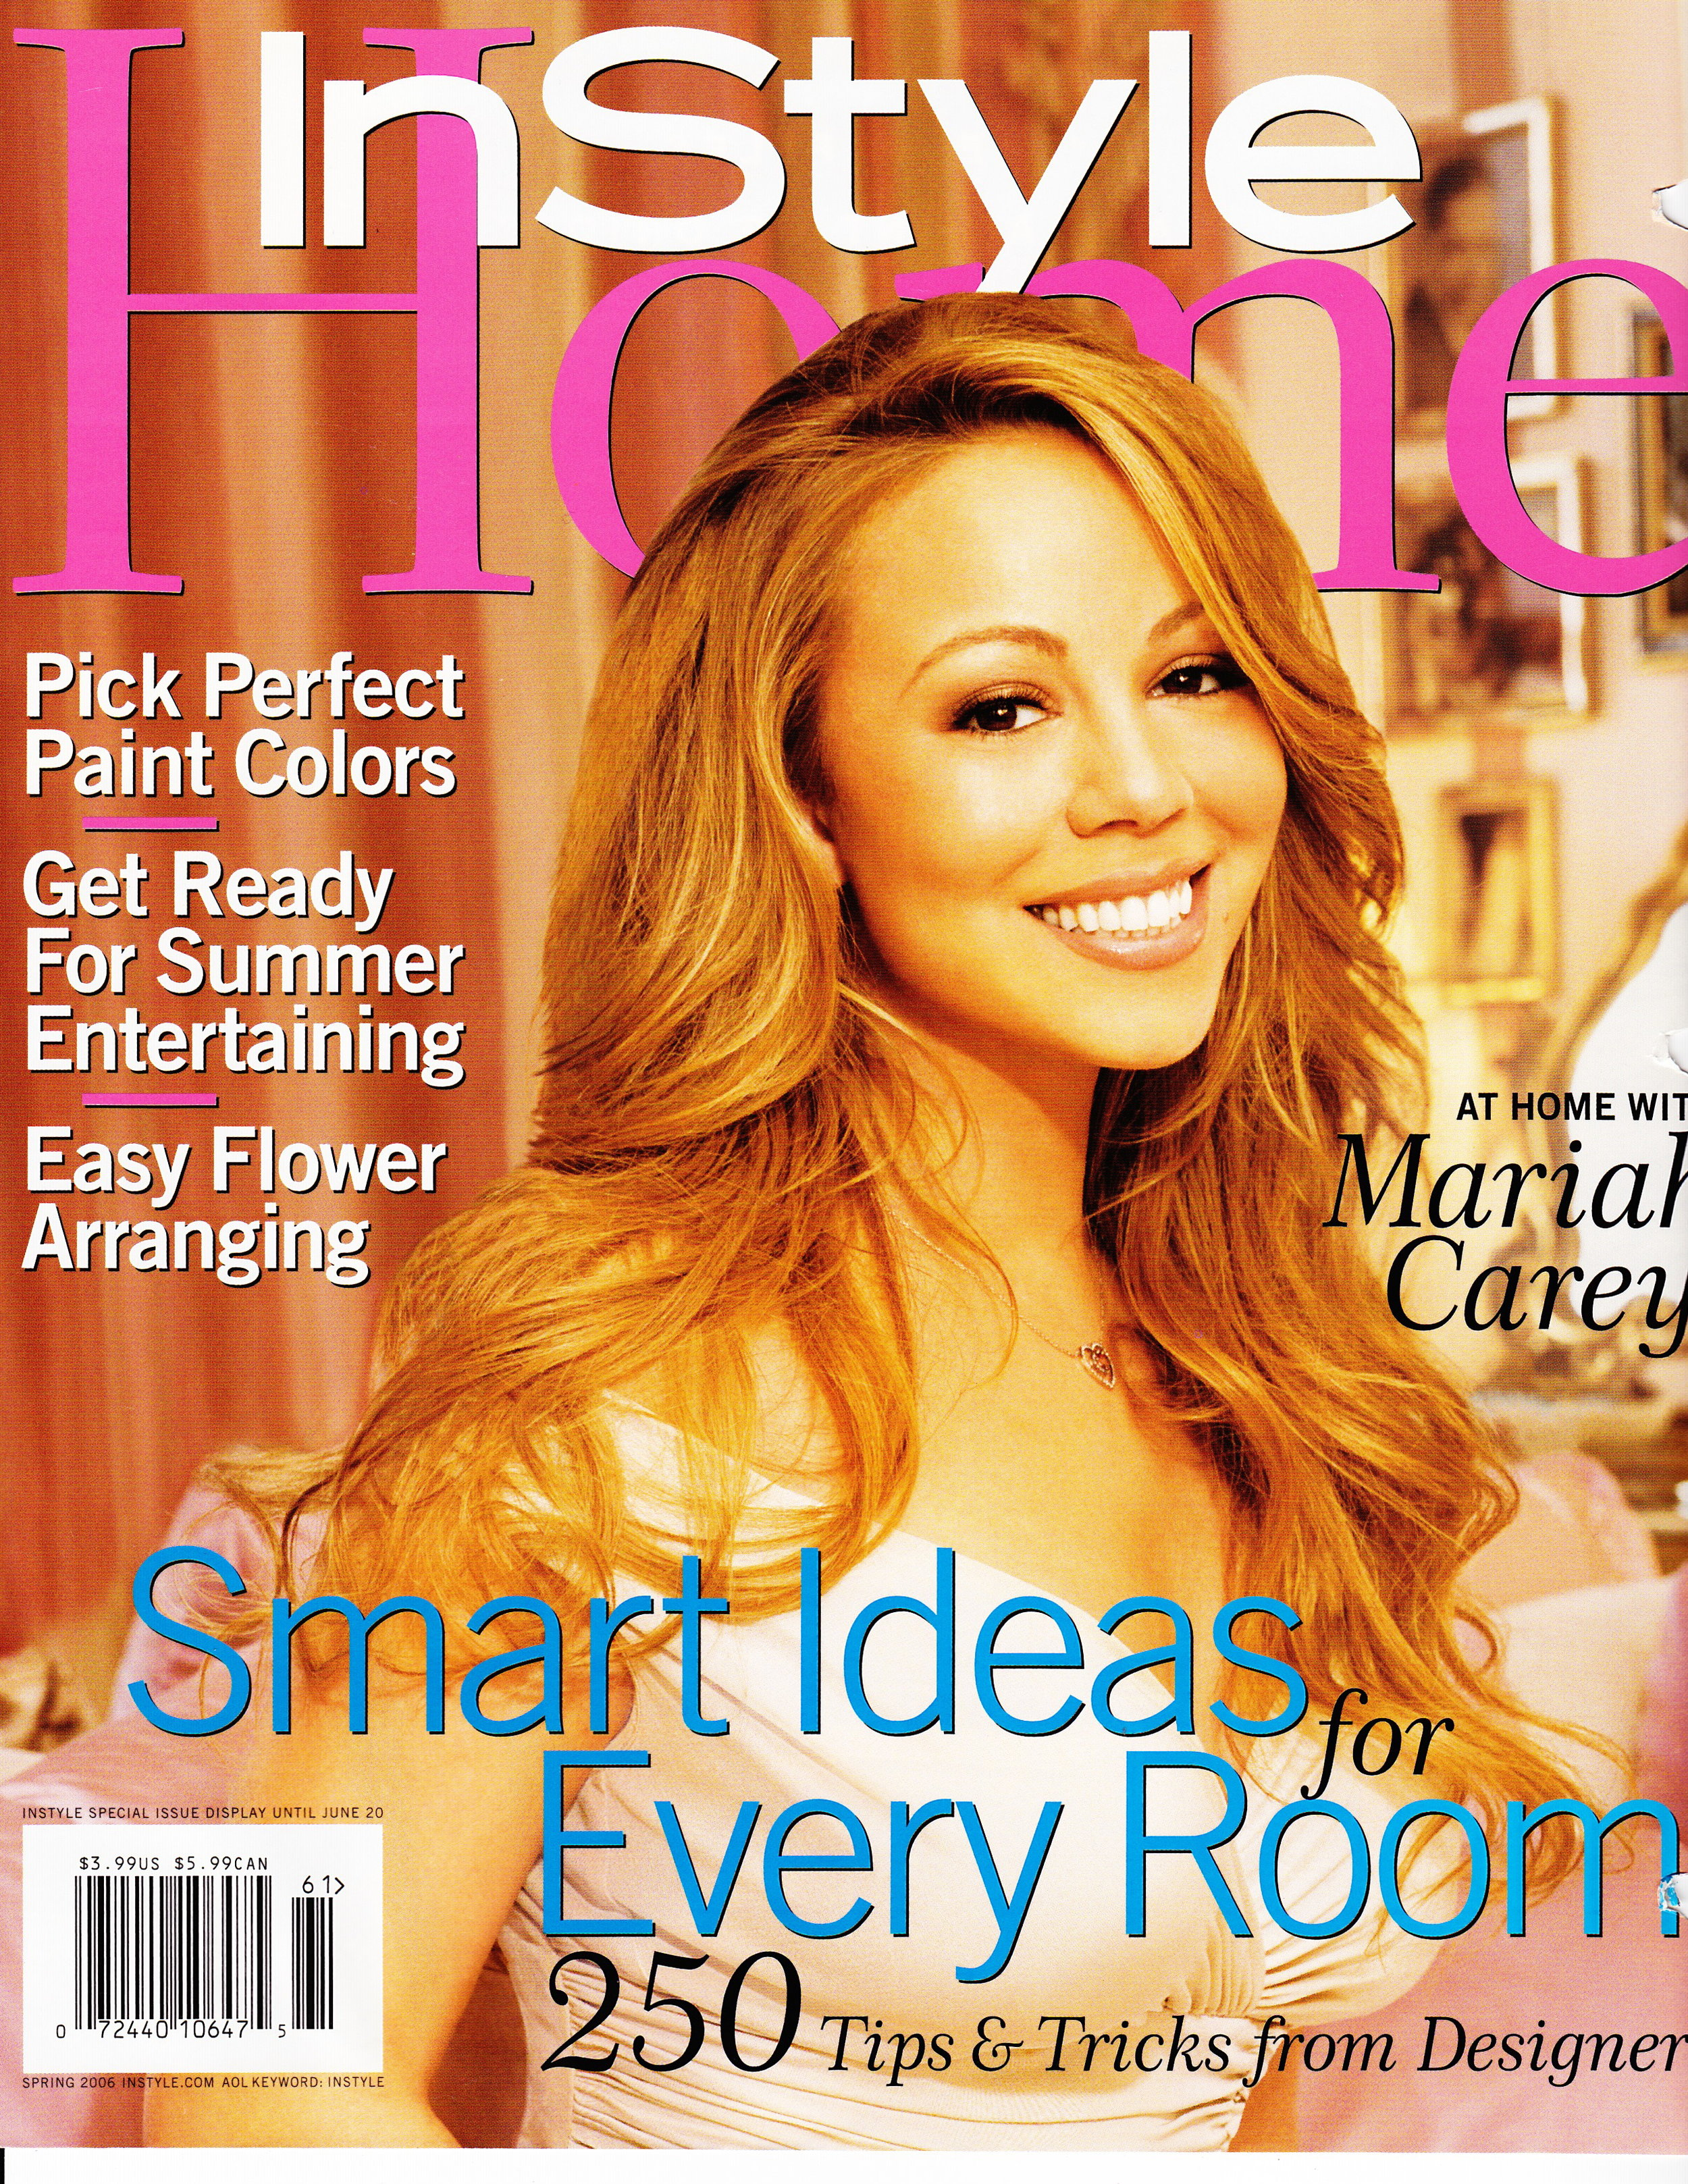 2006 Spring Instyle Home.jpg